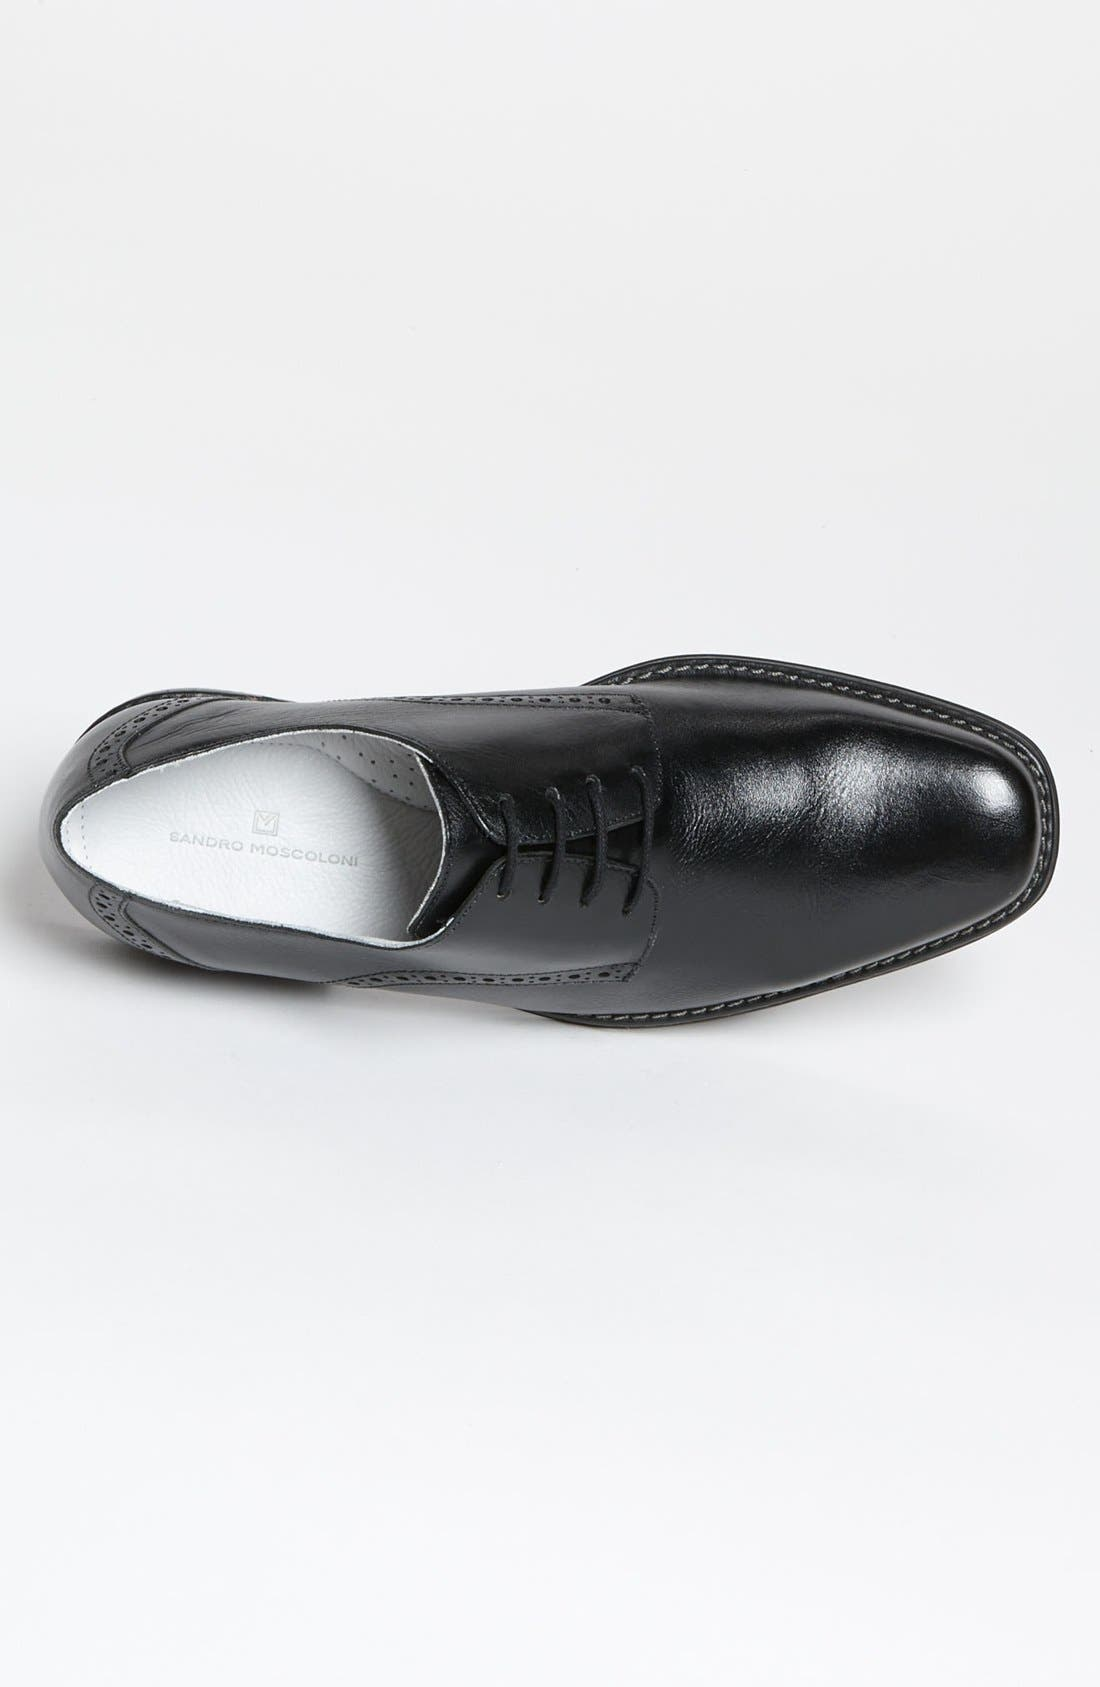 Alternate Image 3  - Sandro Moscoloni 'Yale' Plain Toe Derby